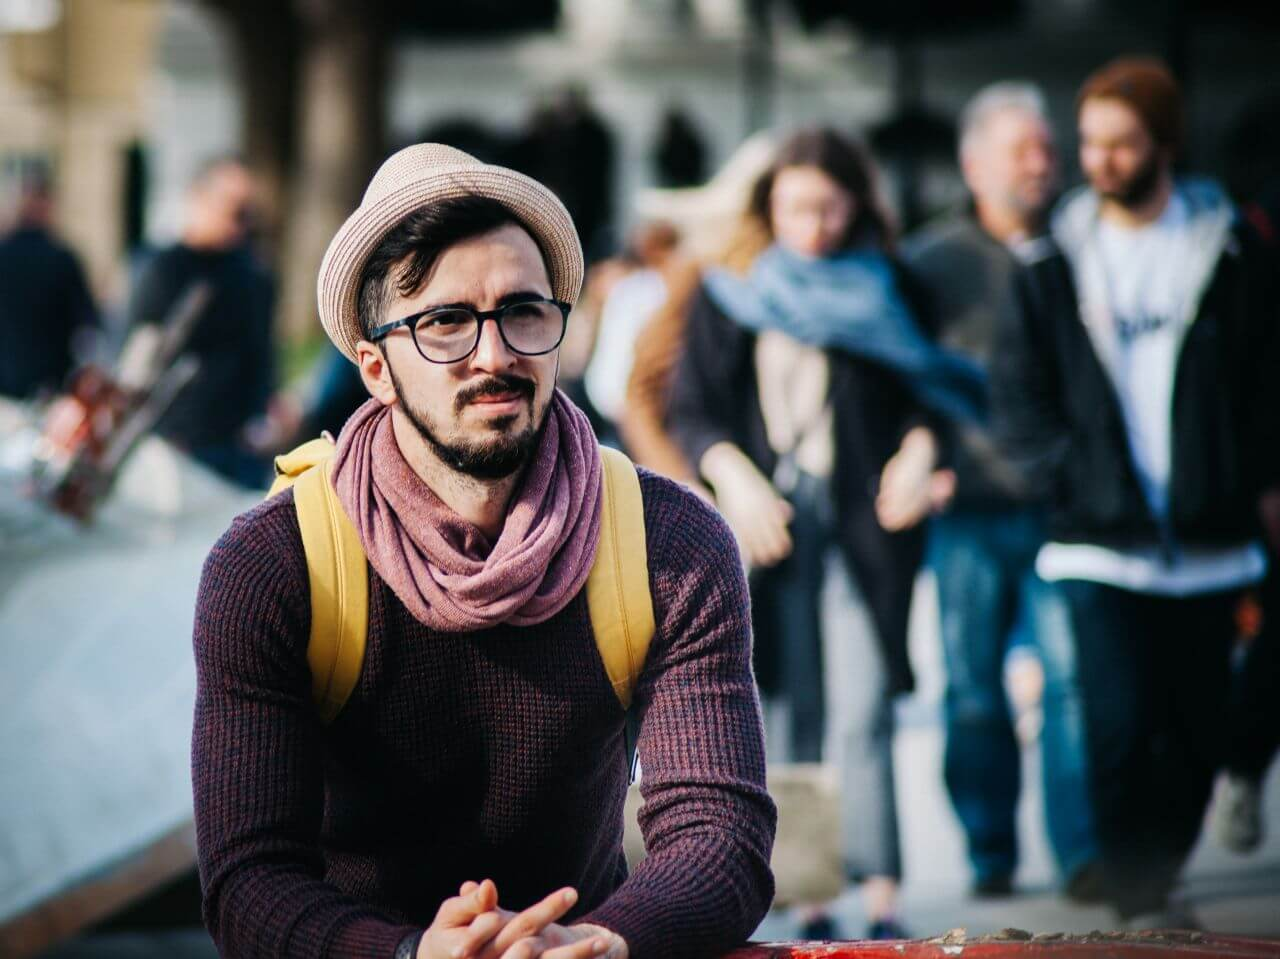 """Free photo """"Hipster Man Crowd"""" by clem onojeghuo"""